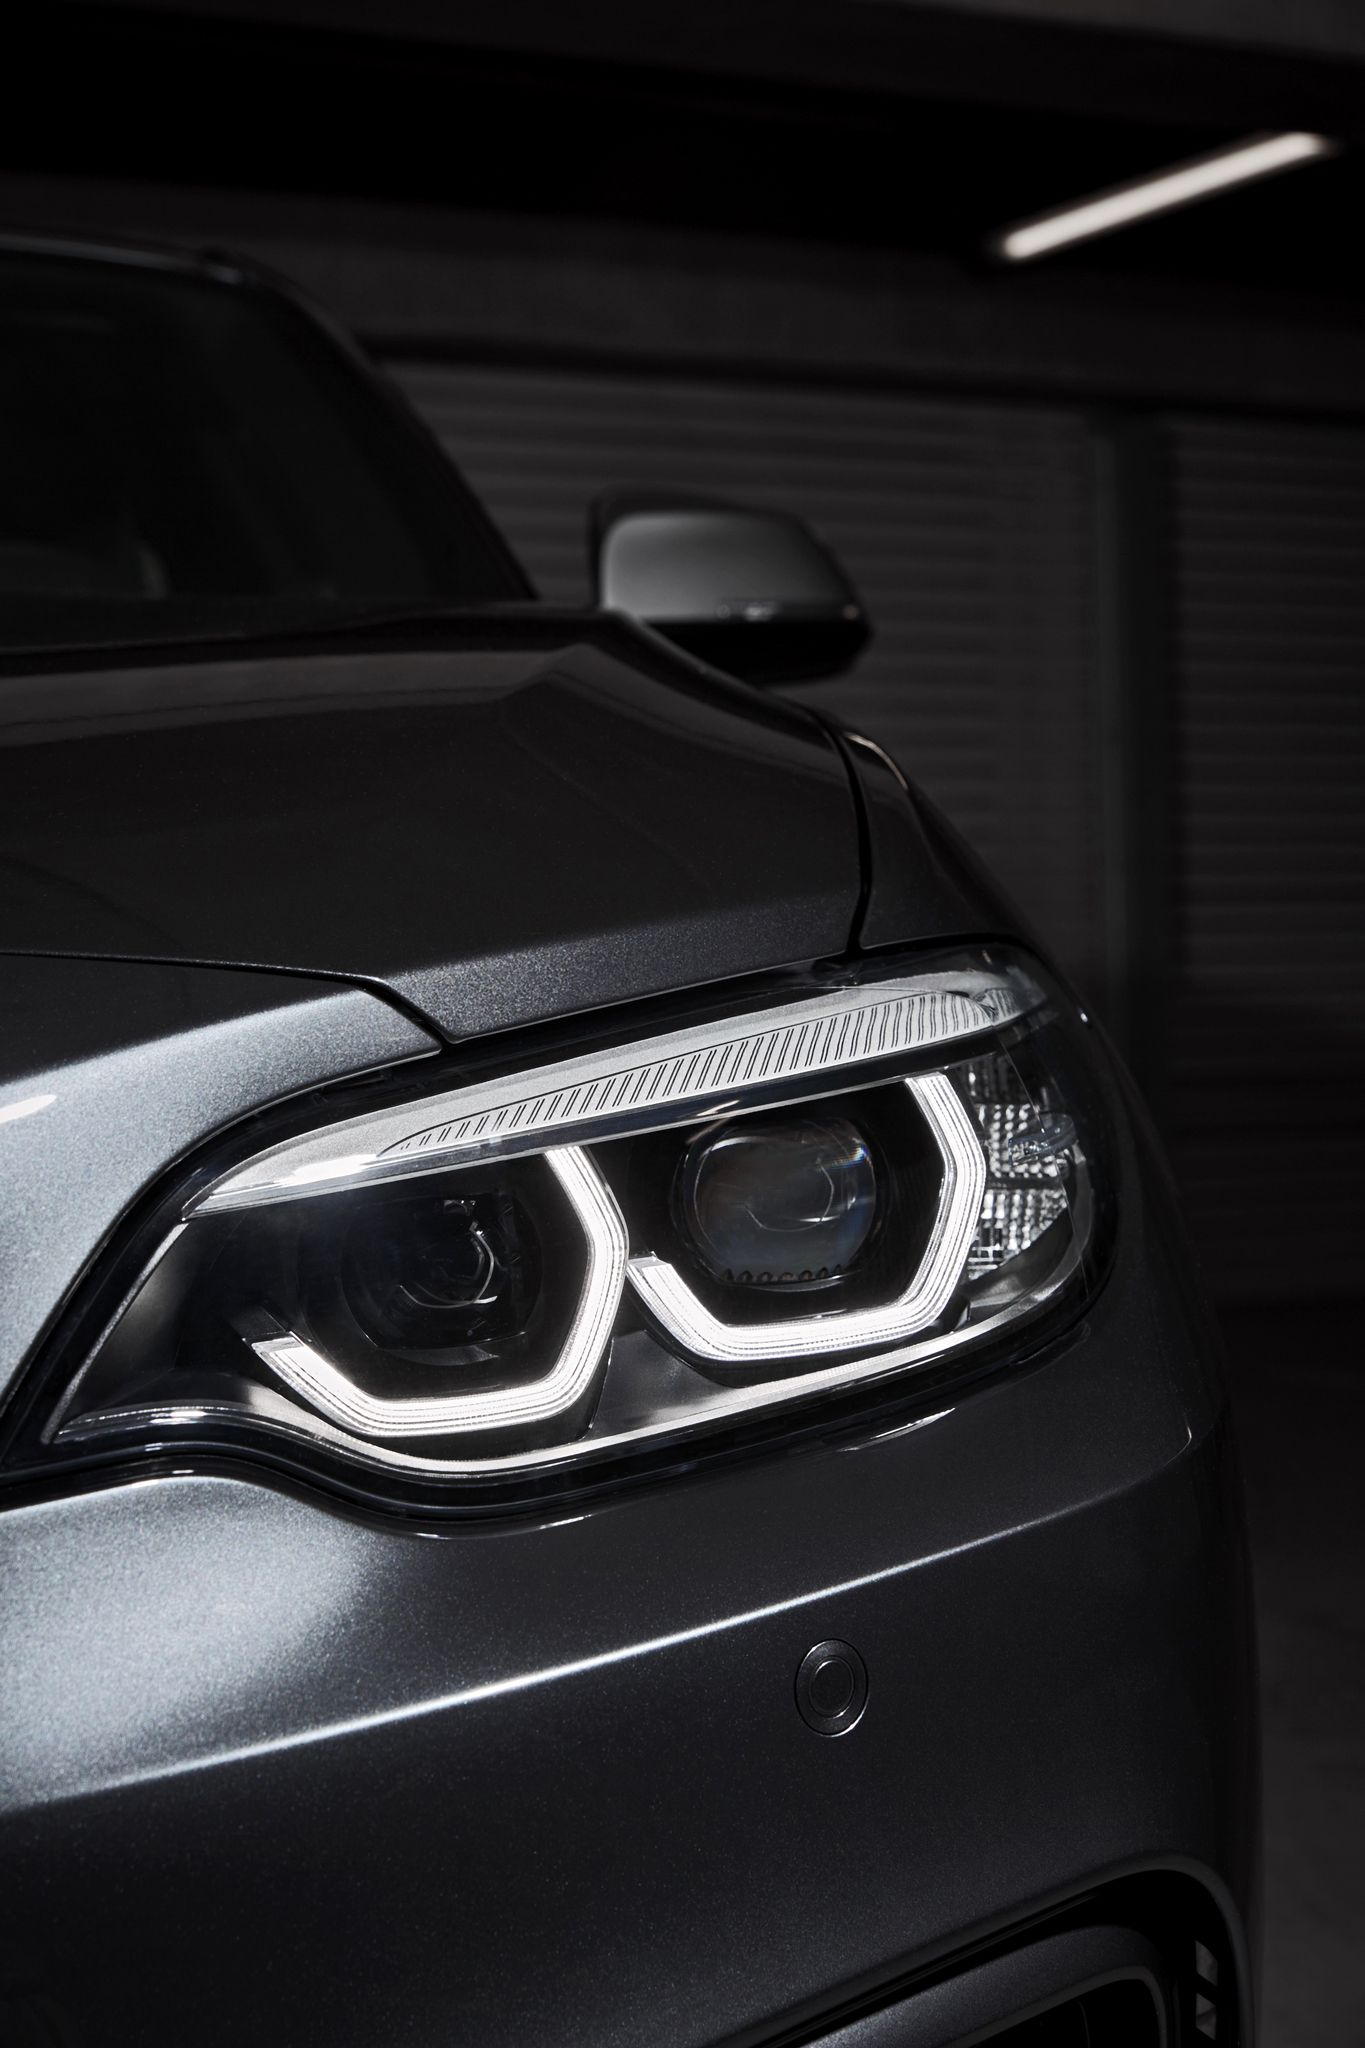 Bmw F22 M240i Coupe Facelift Mperformanceedition Xdrive Sheerdrivingpleasure Drift Tuning Badass Provocative Eyes S Bmw Coupe Classic Cars Muscle